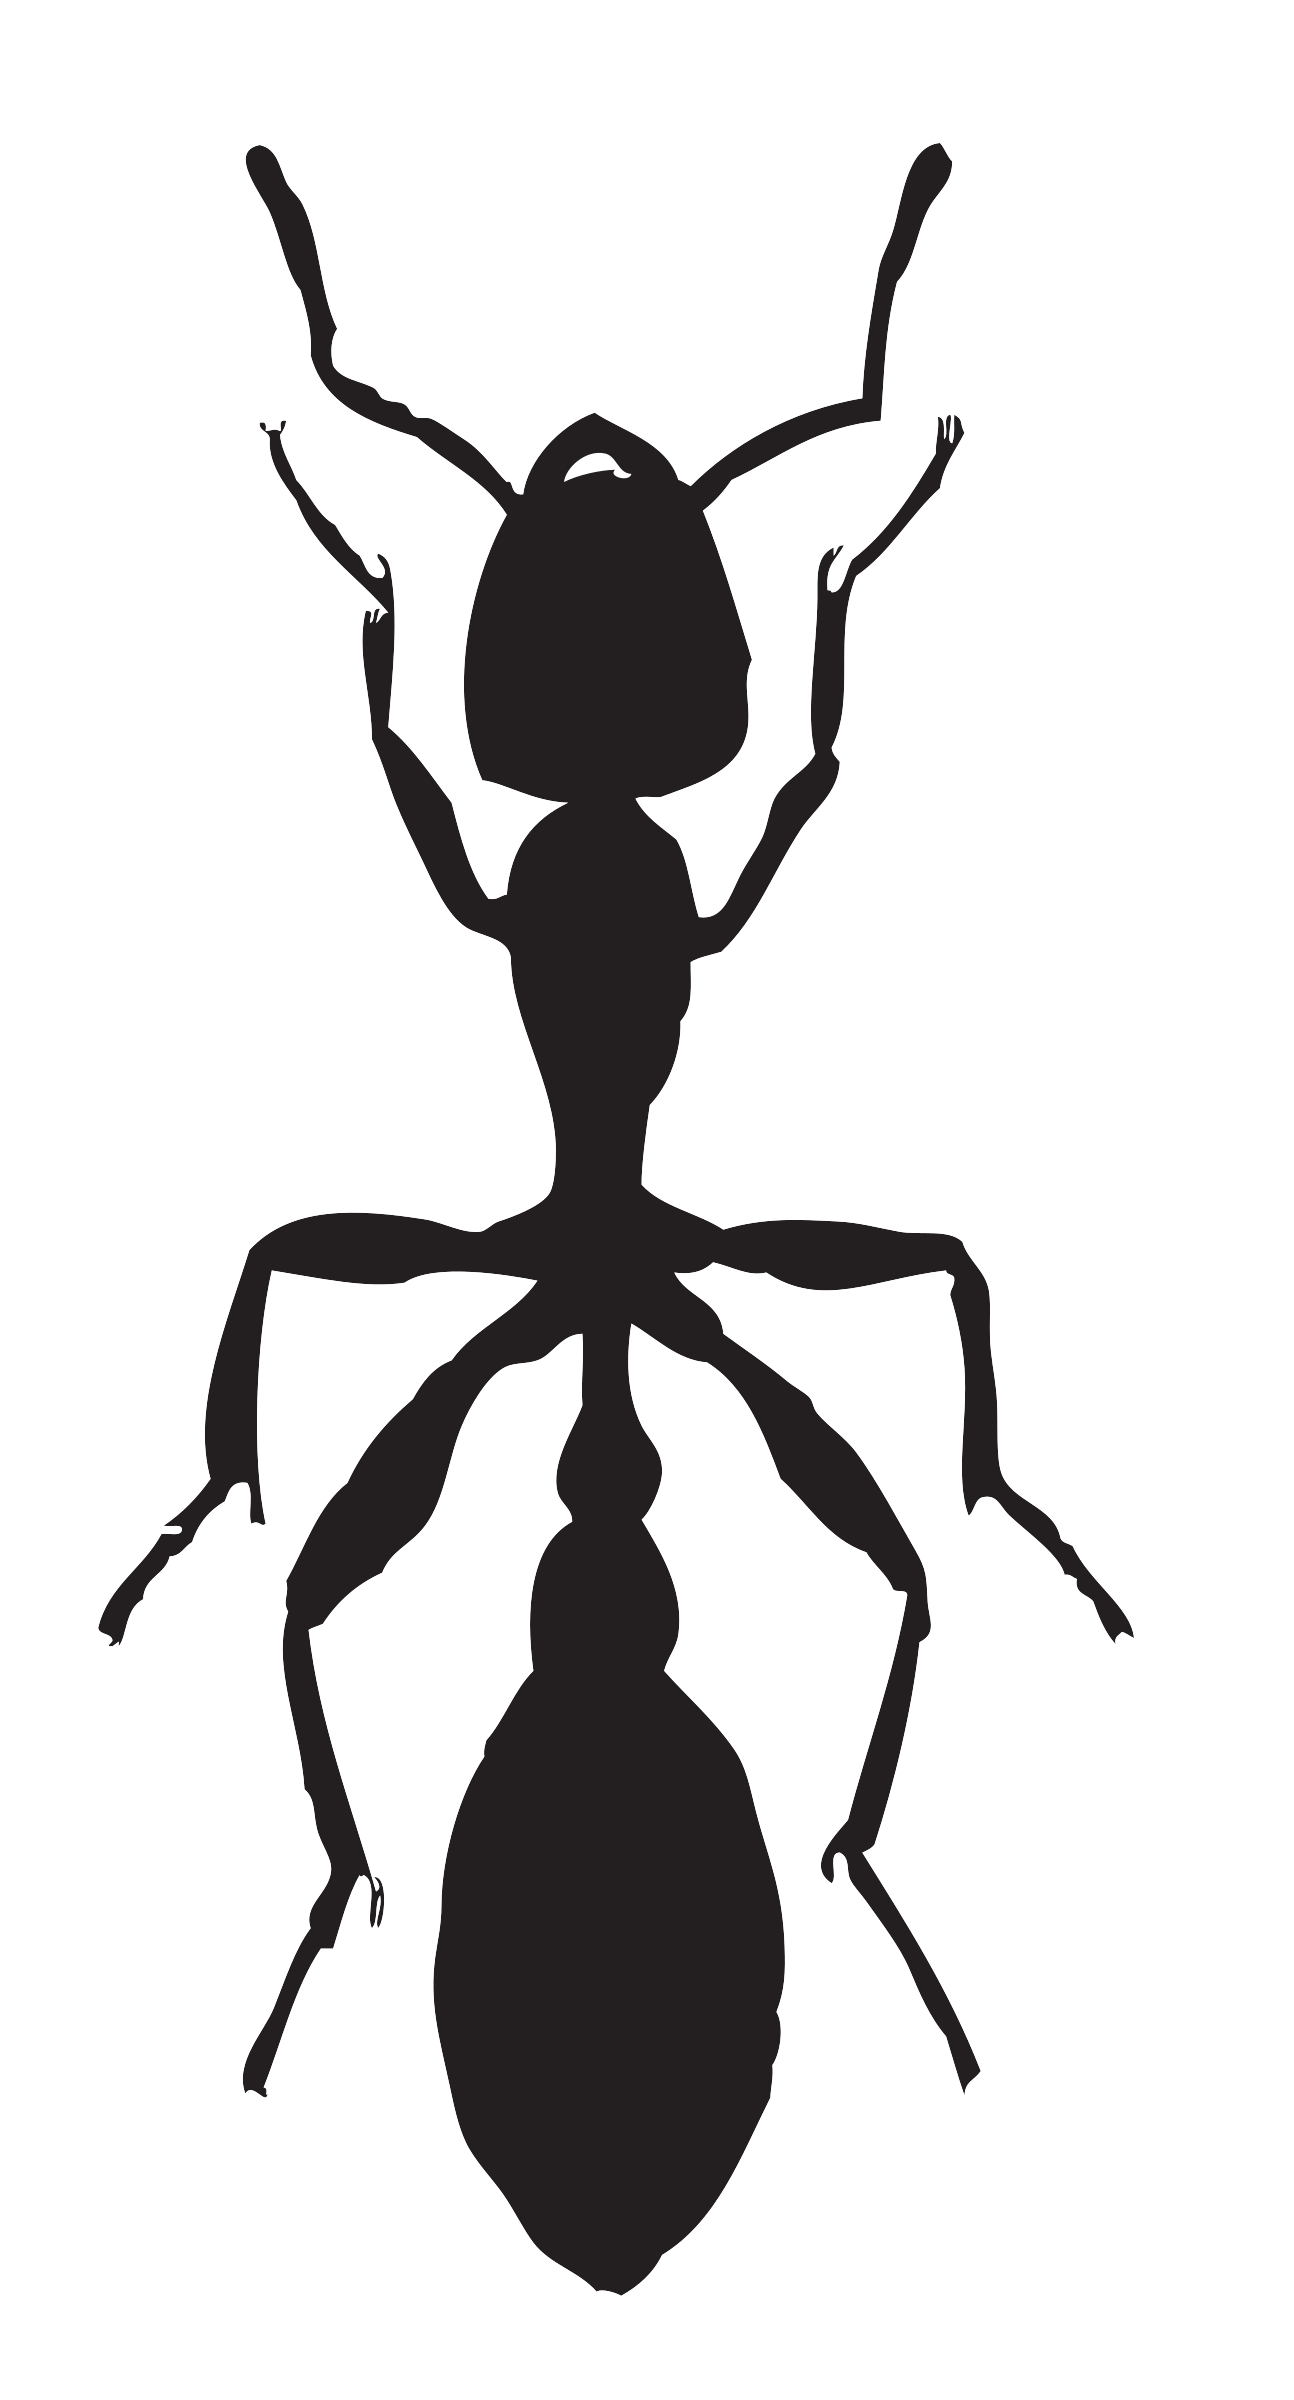 Ant clipart body. Tree big image png